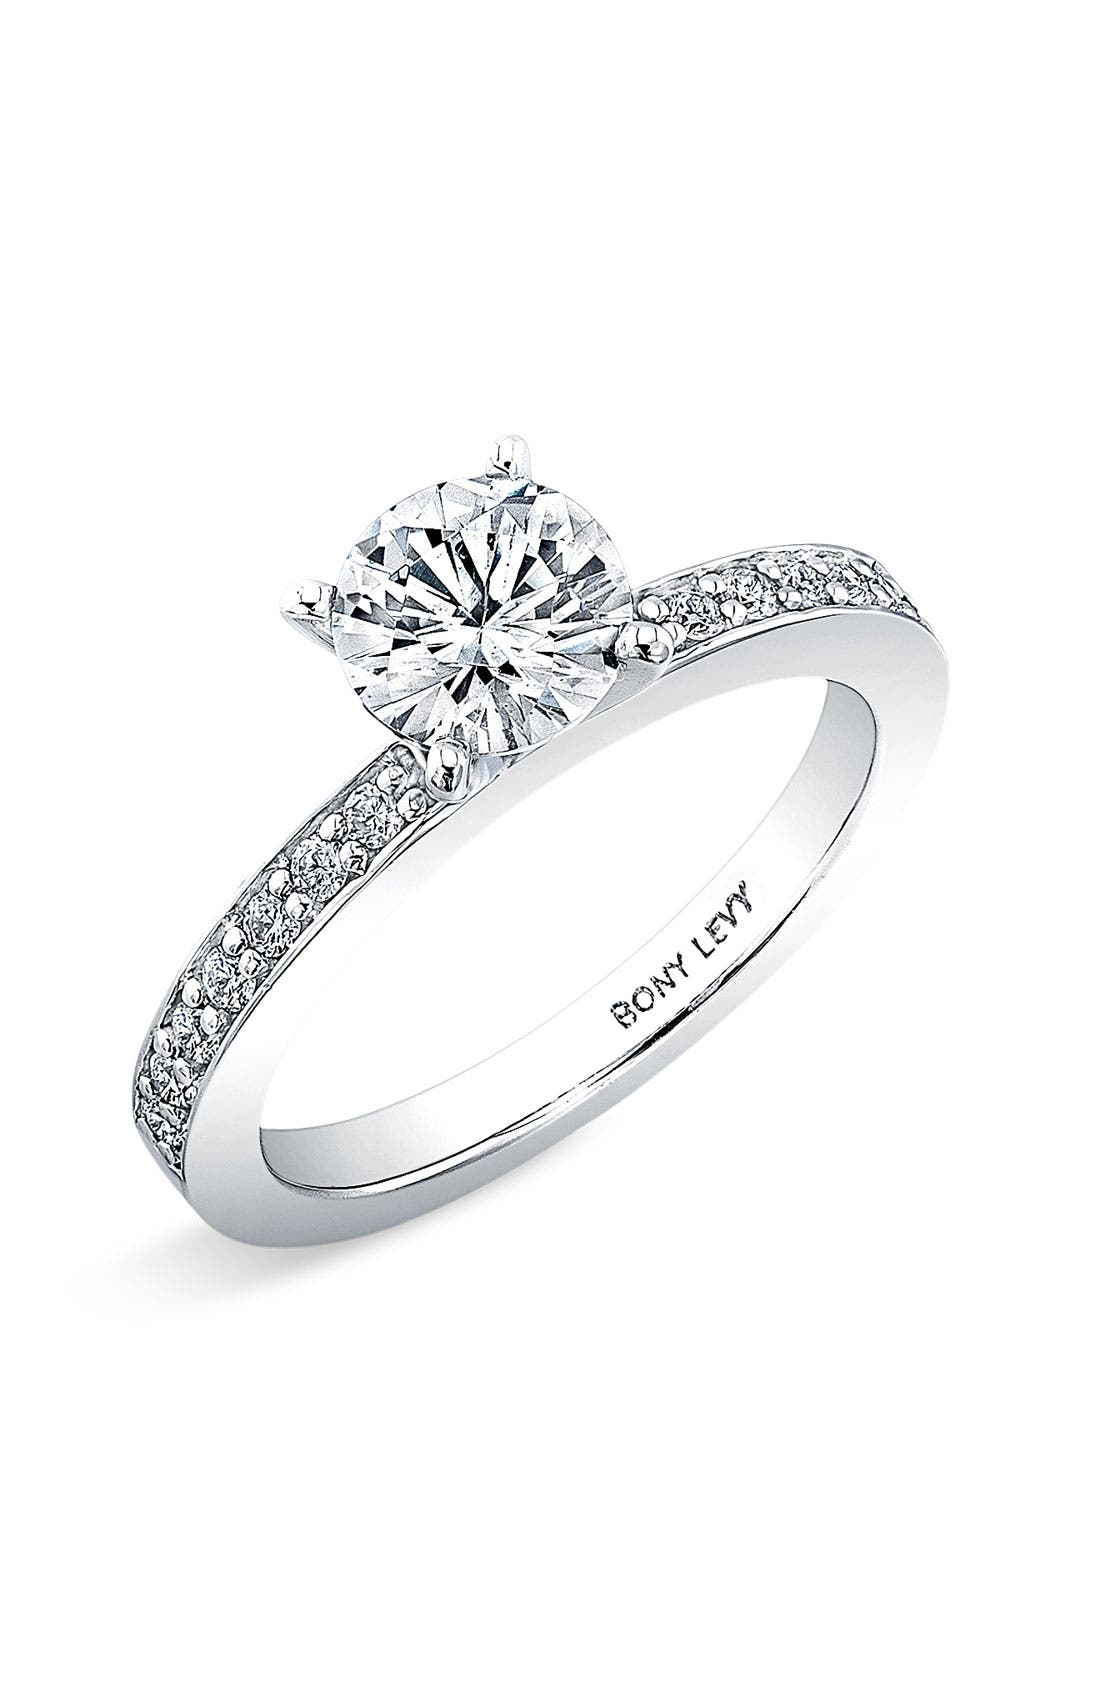 Channel Set Diamond Engagement Ring Setting,                             Main thumbnail 1, color,                             710